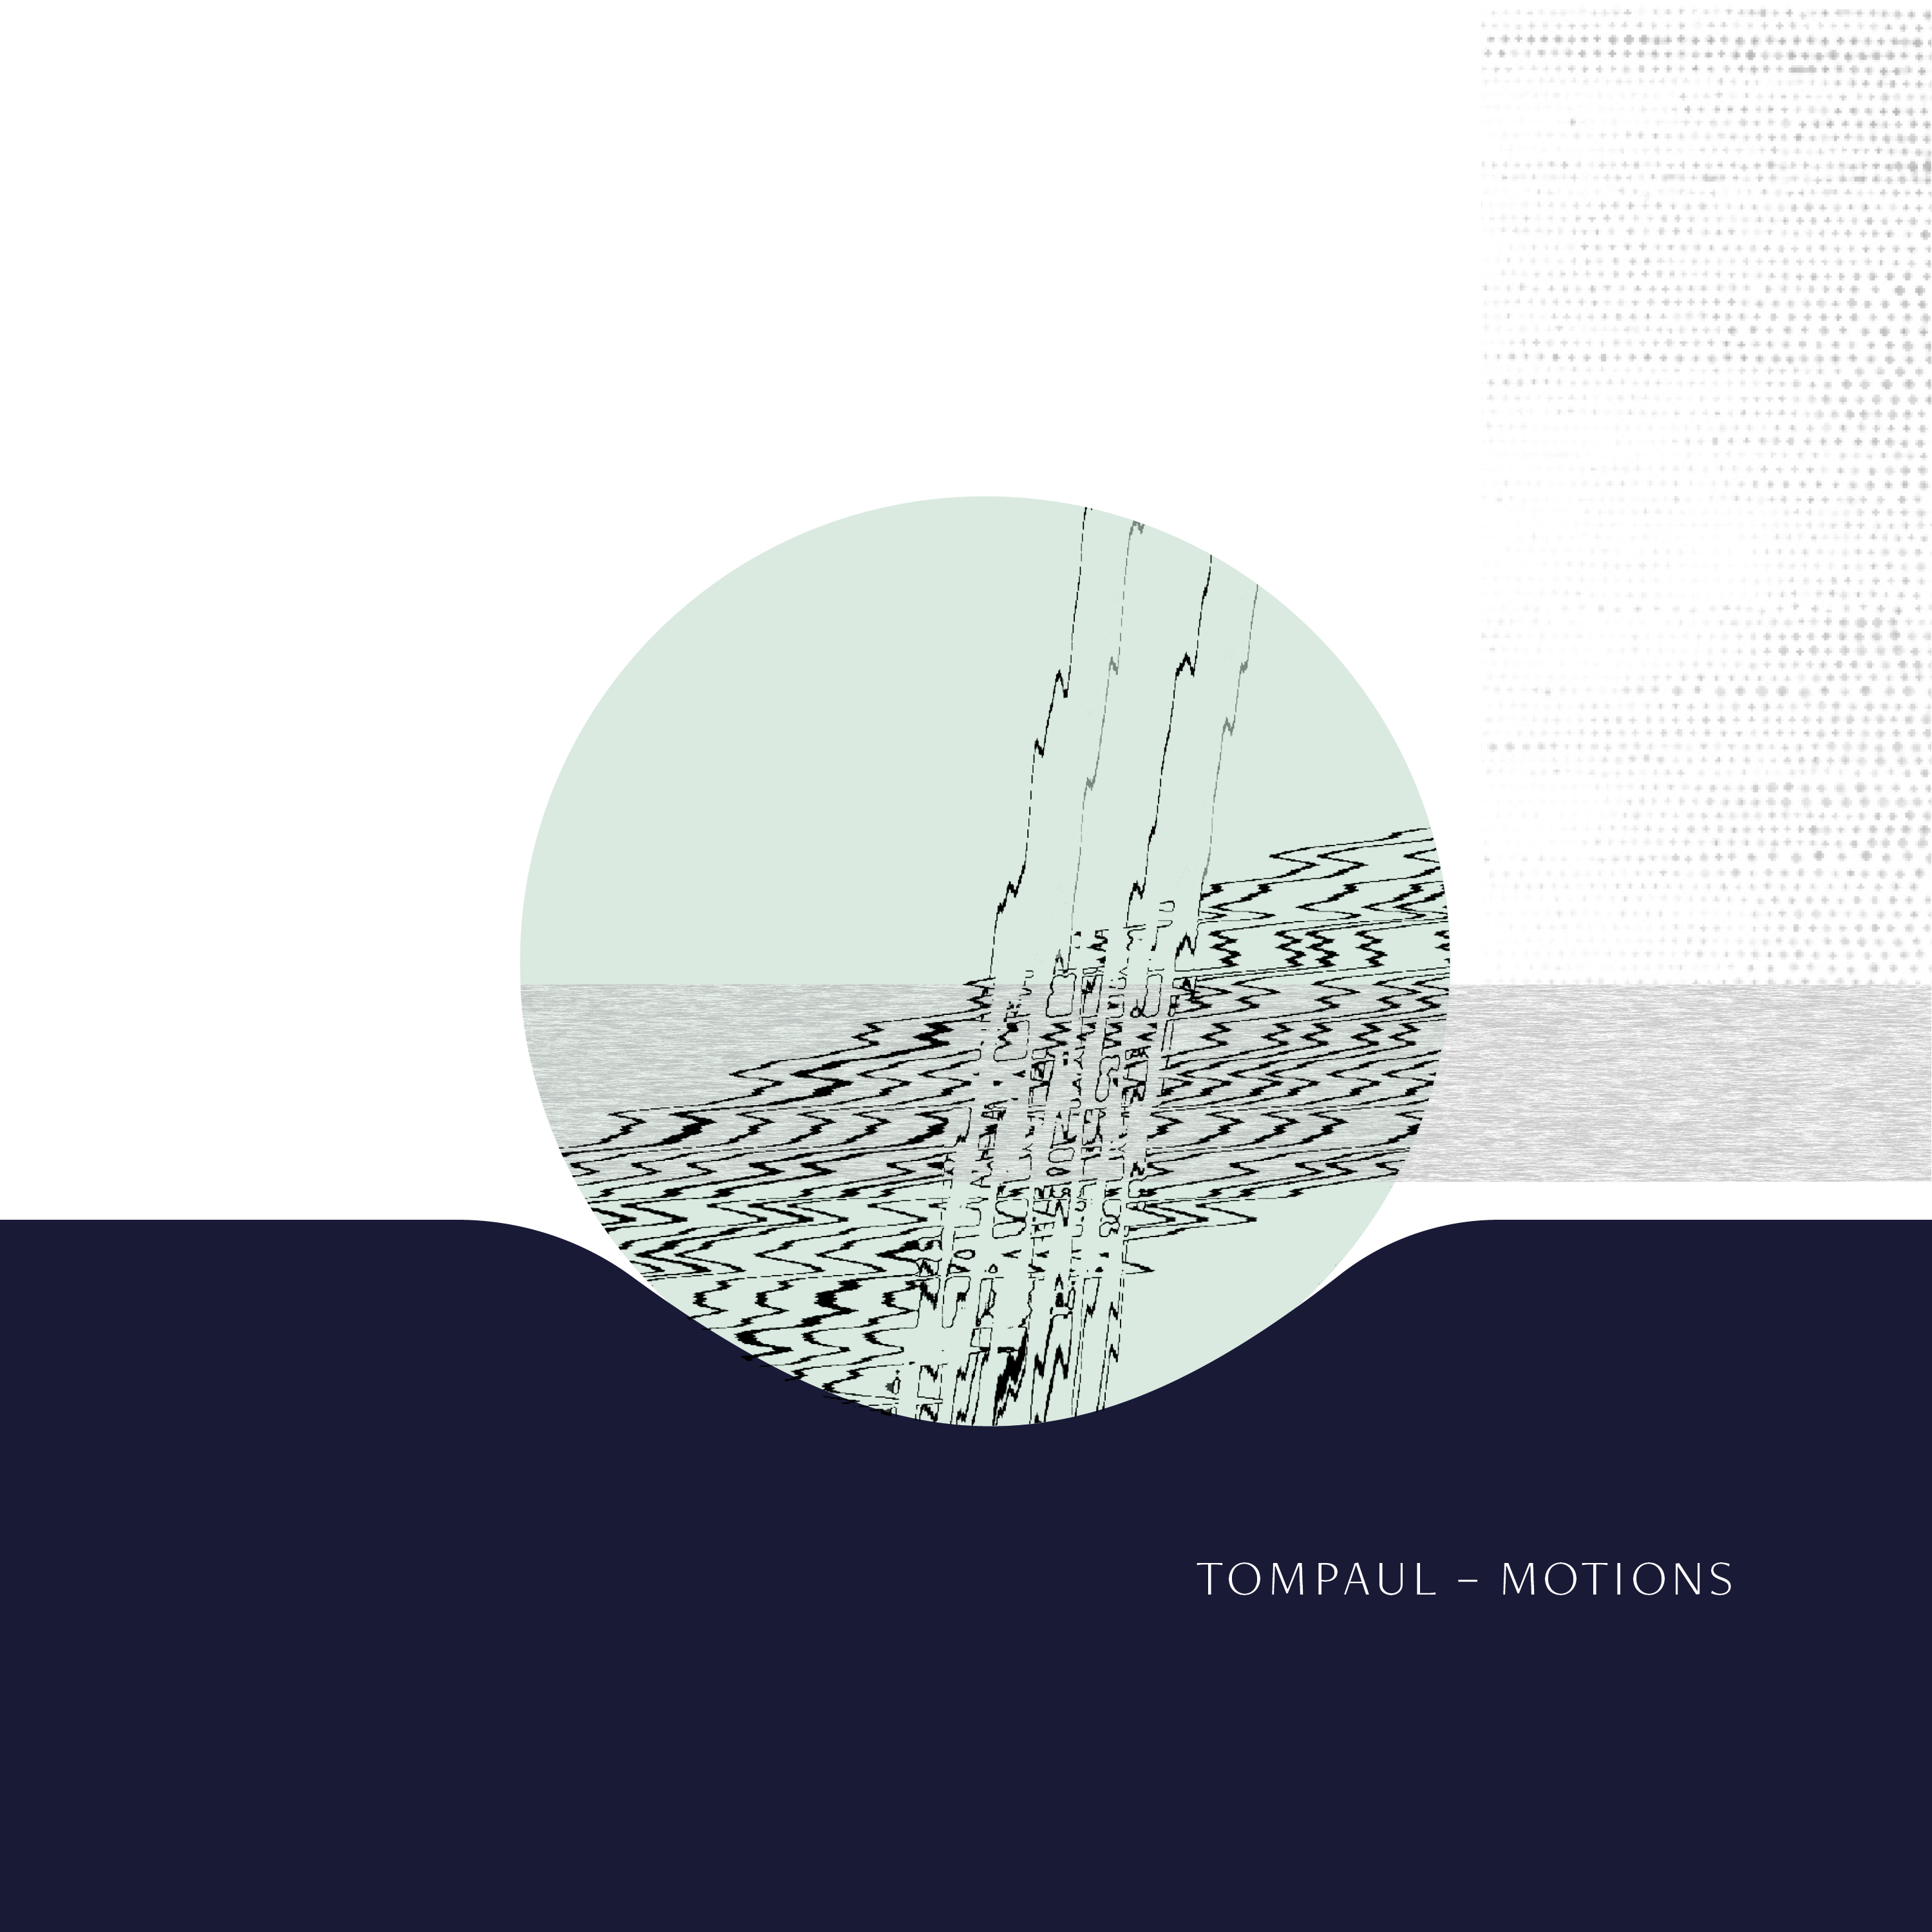 Plattencover TOMPAUL Motions Remixes